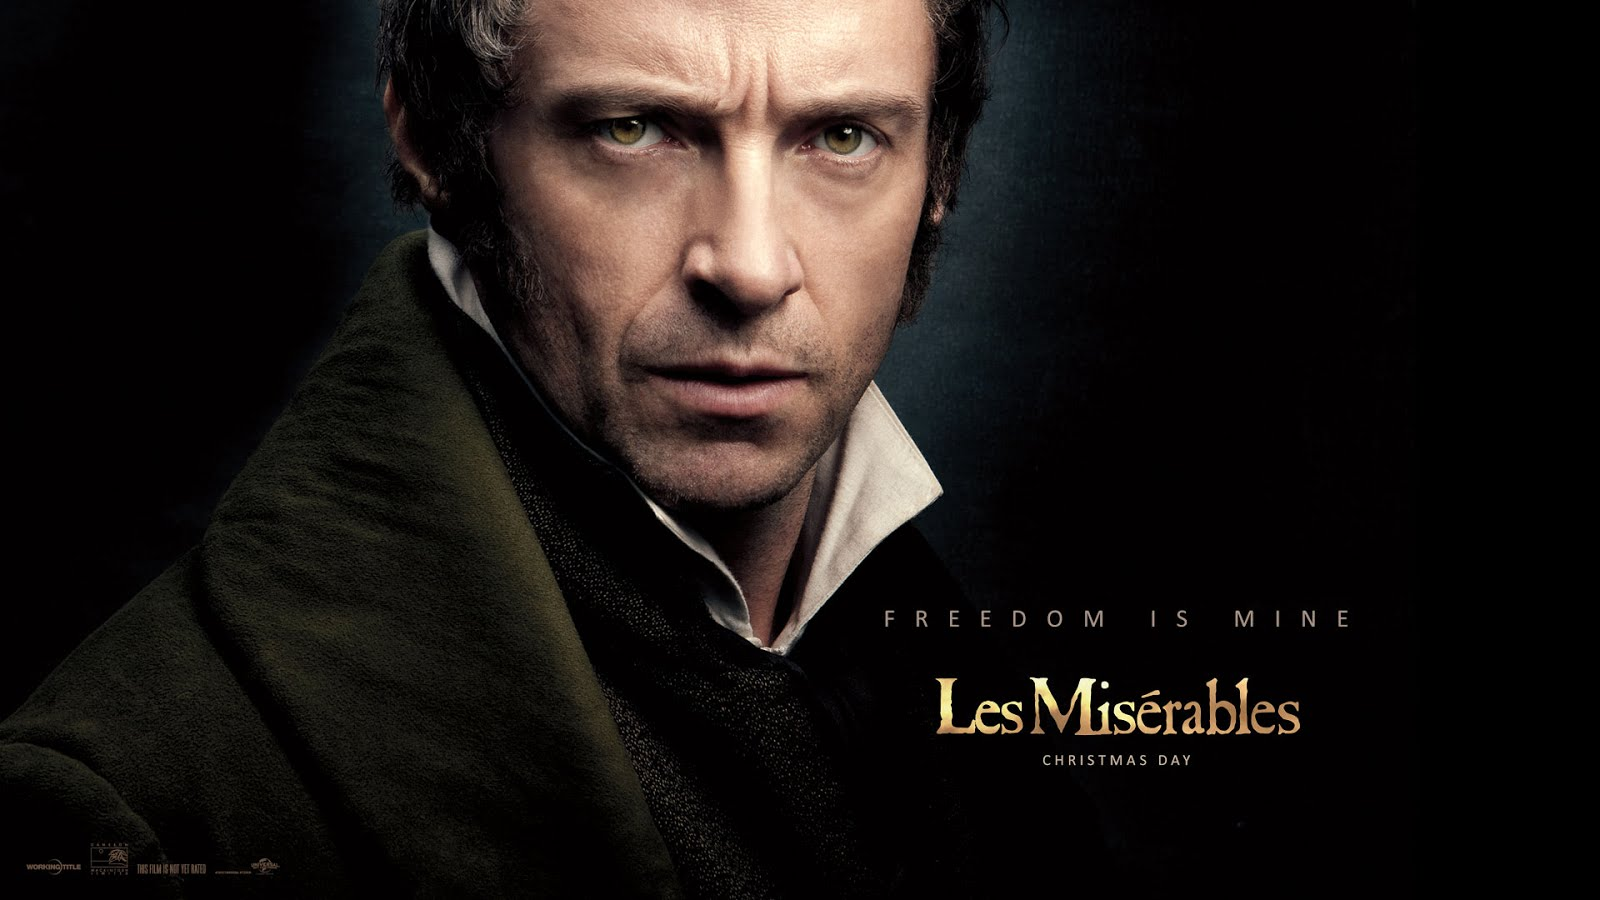 http://4.bp.blogspot.com/-1kKlpcPizWw/UOBuLsoHe5I/AAAAAAAAApg/ov2eGw6-iho/s1600/Les-Miserables-Wallpapers-les-miserables-2012-movie-.jpg